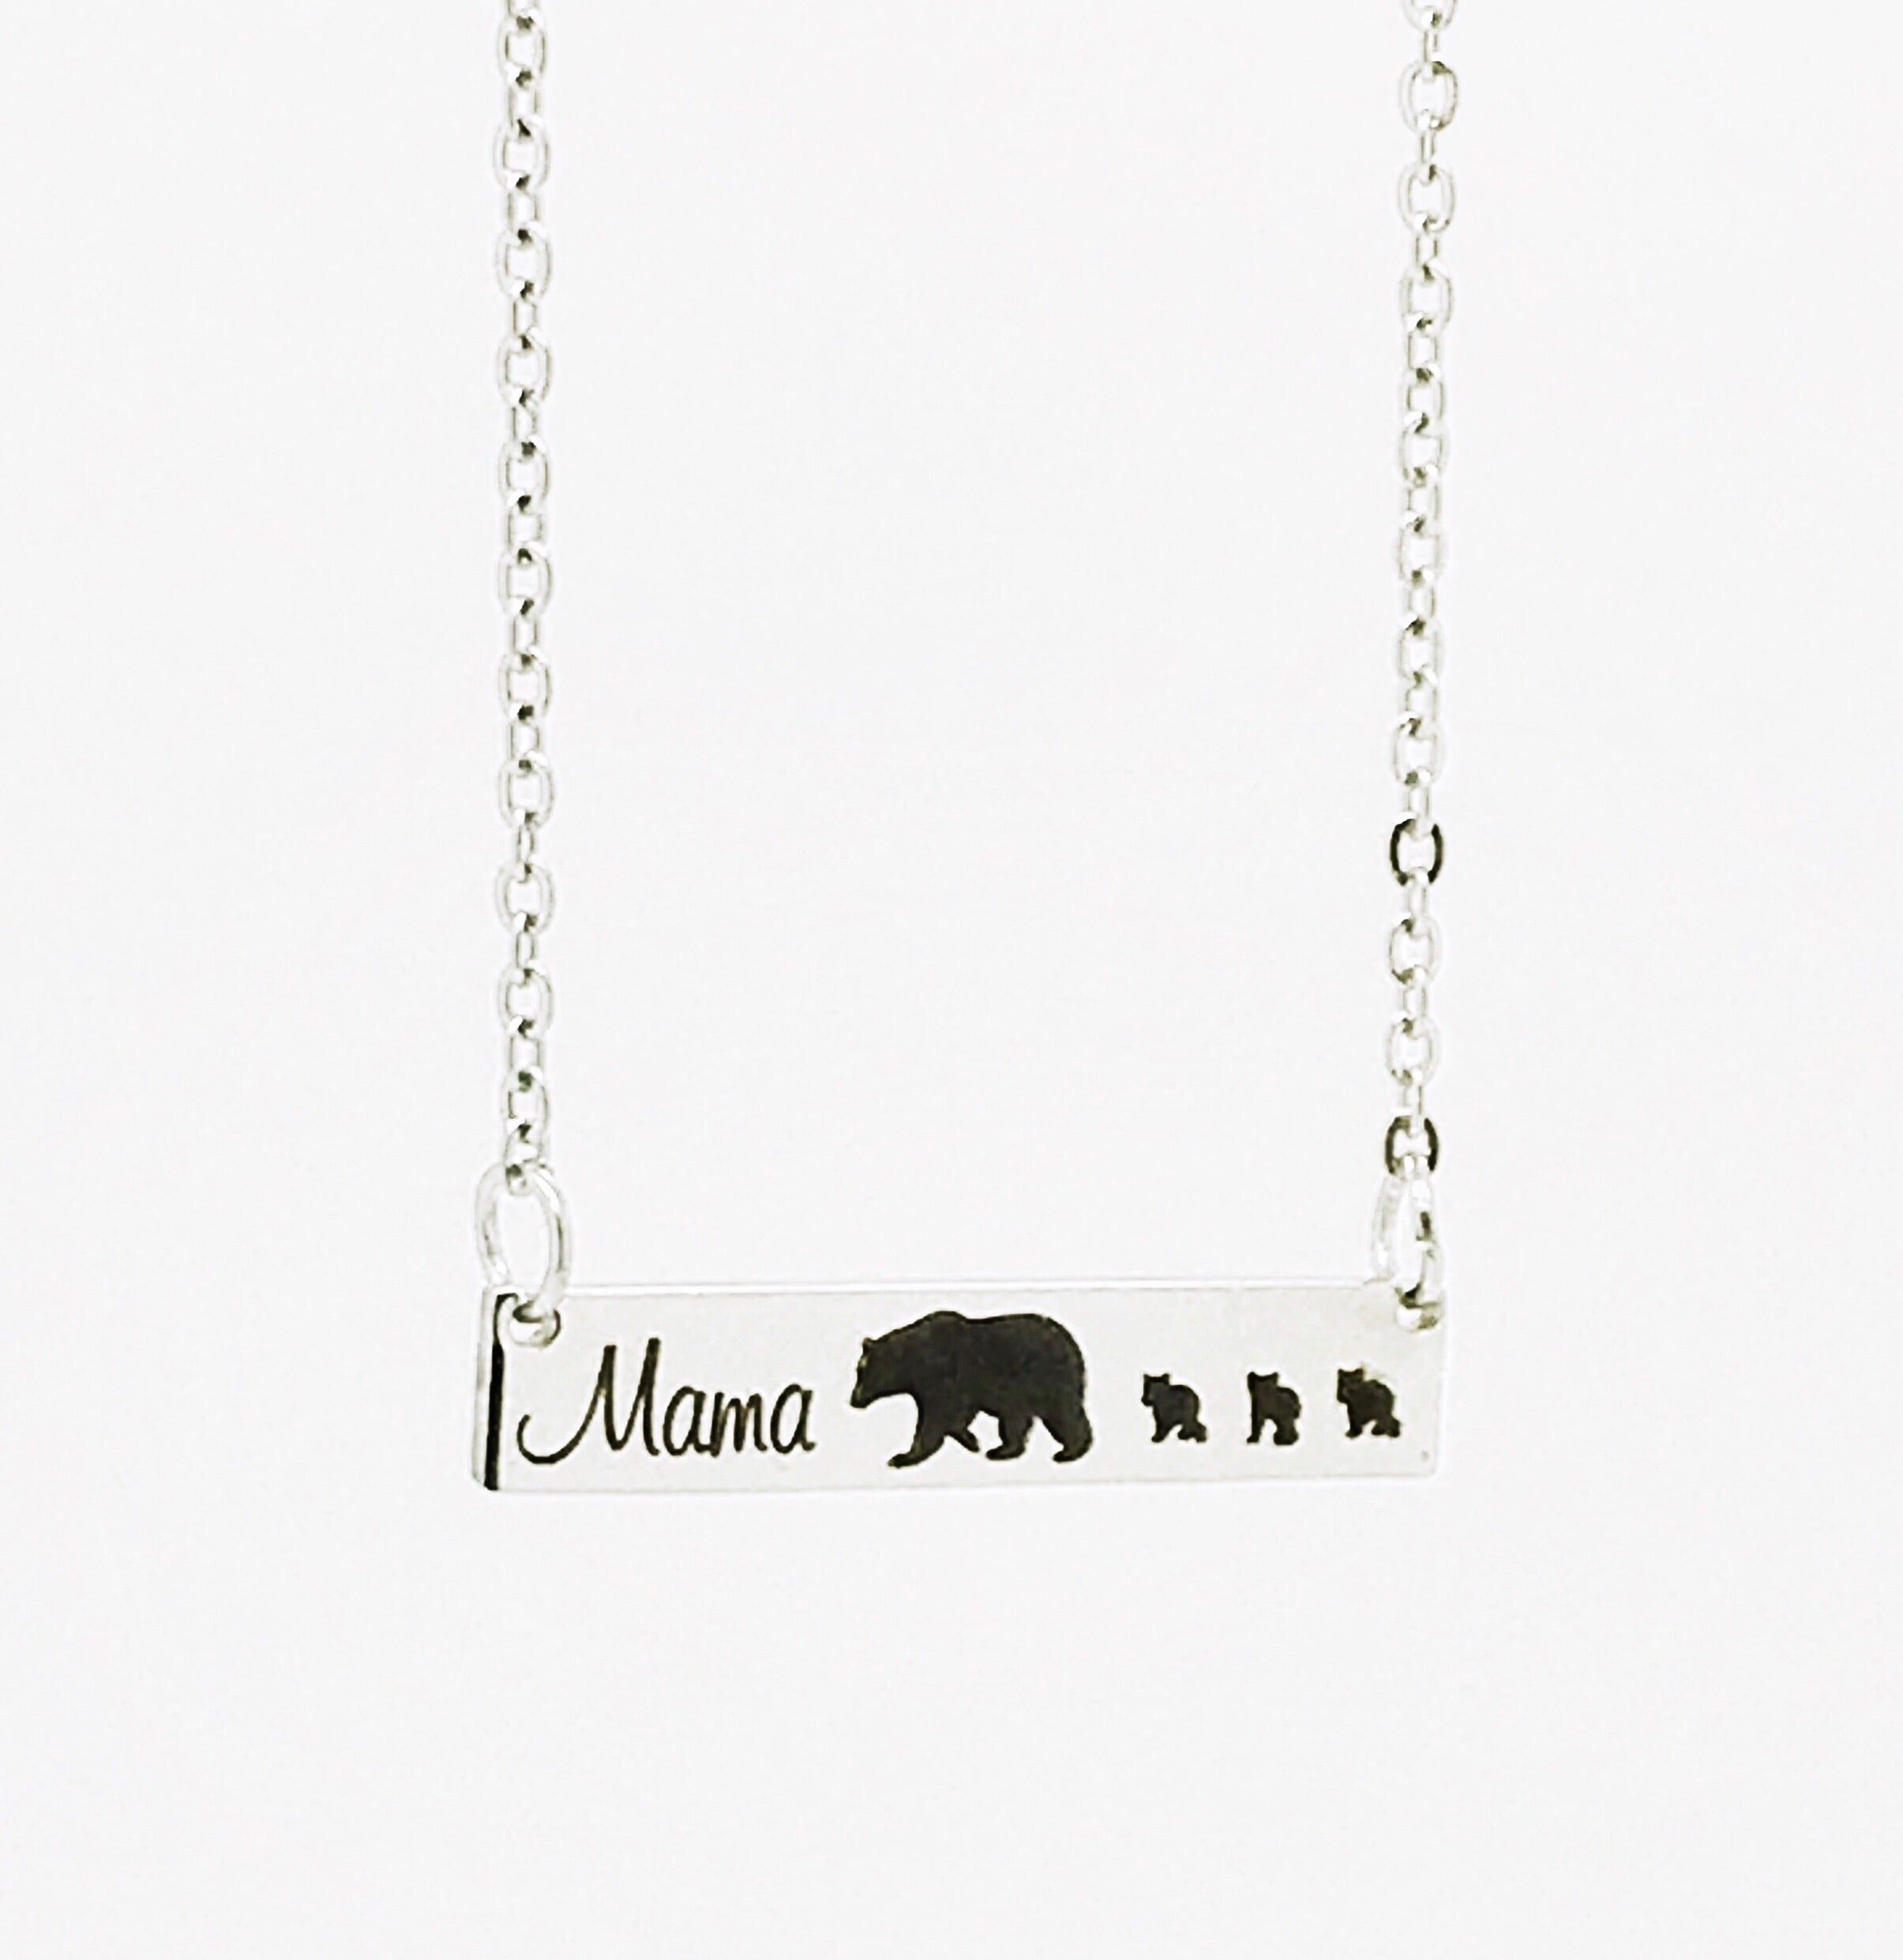 tone product mother for mothers gold pendant store necklace mom bear doveno silver personalized mama gift day